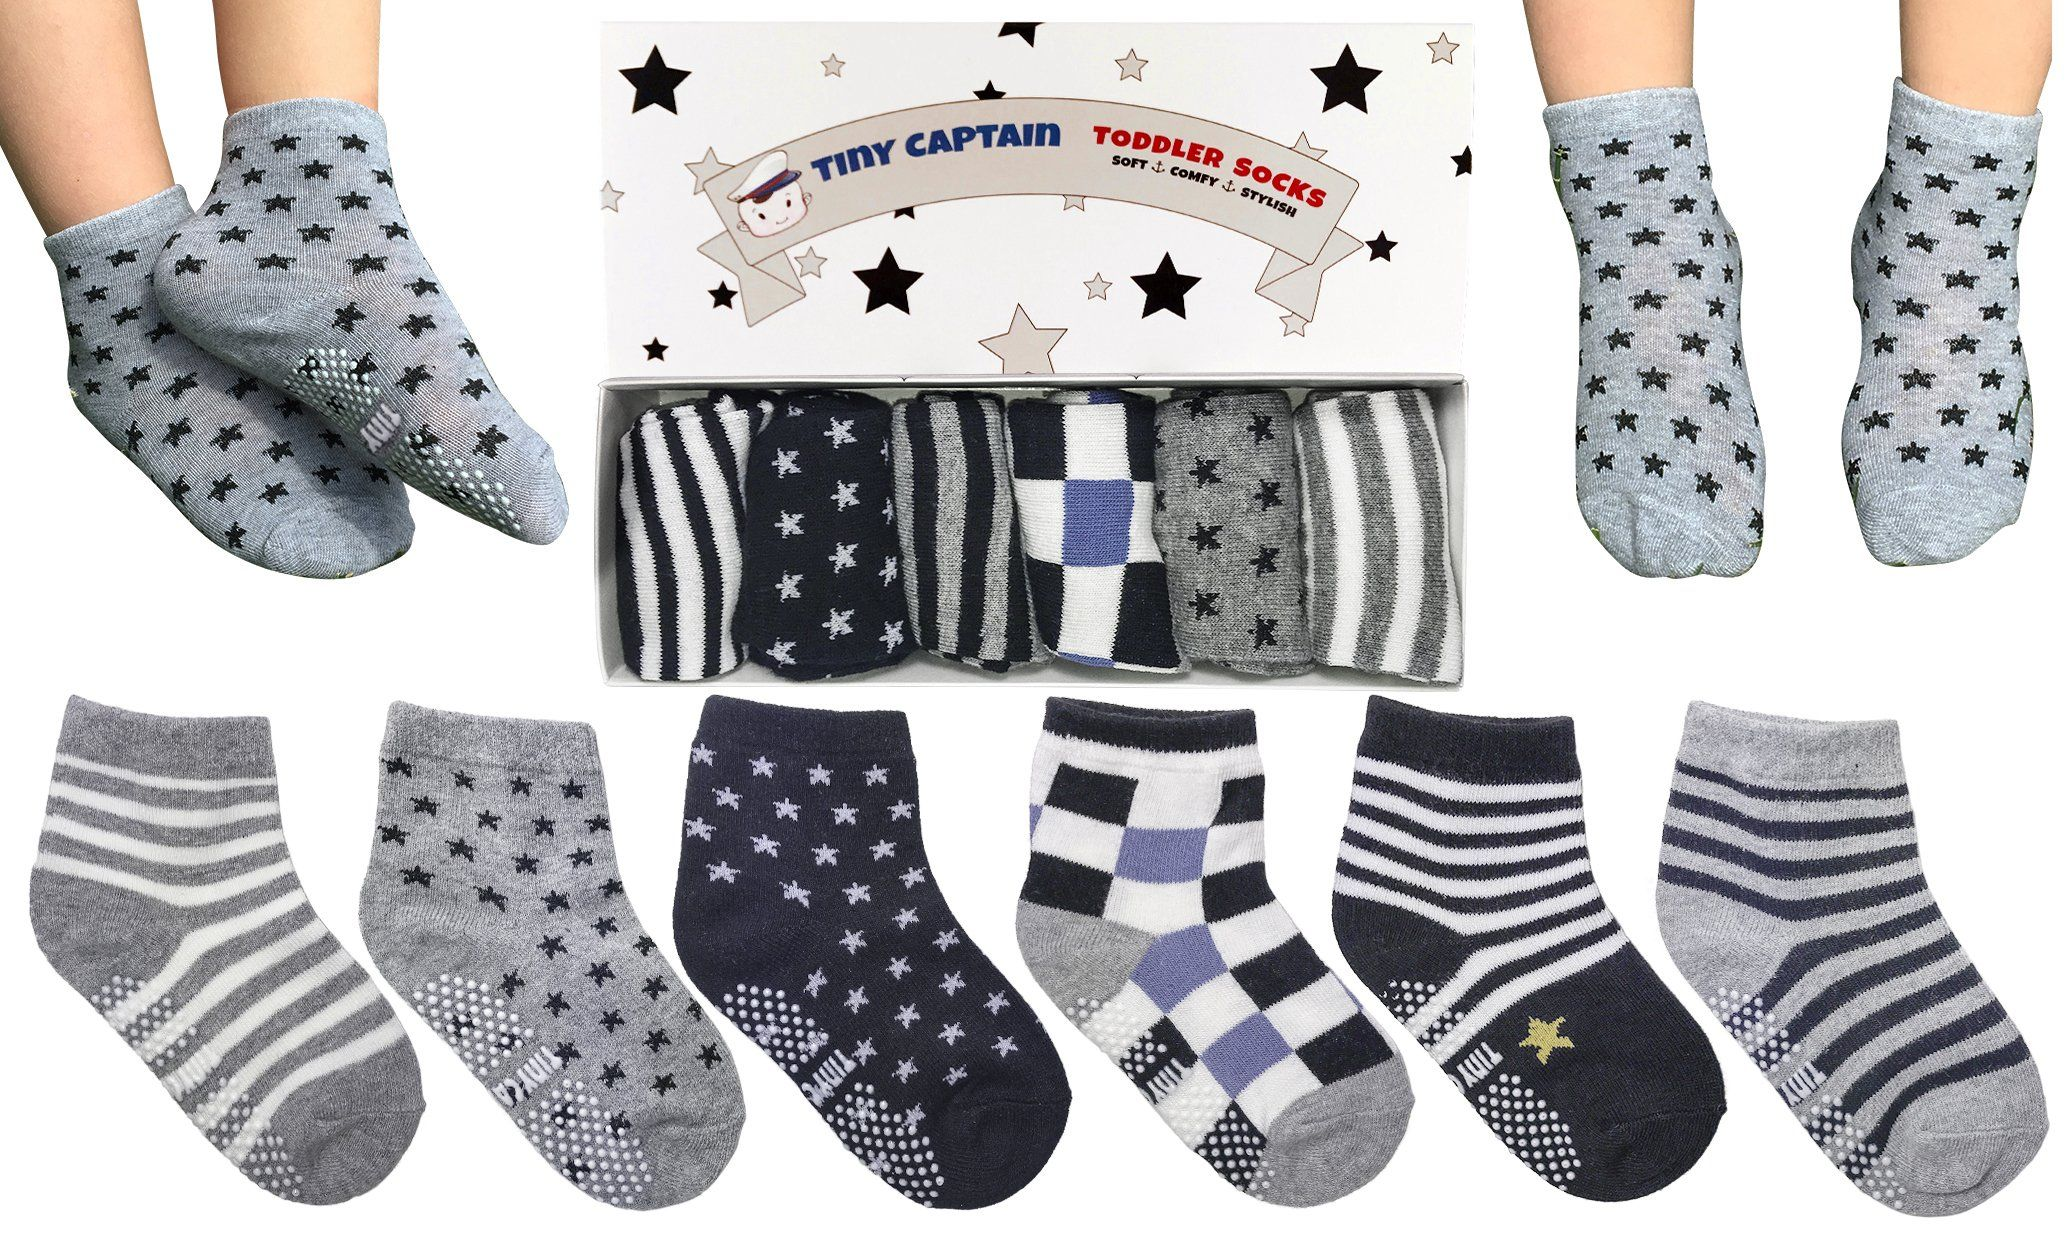 Tiny Captain Toddler Boy Non Slip Socks Best Gift For 1 3 Year Old